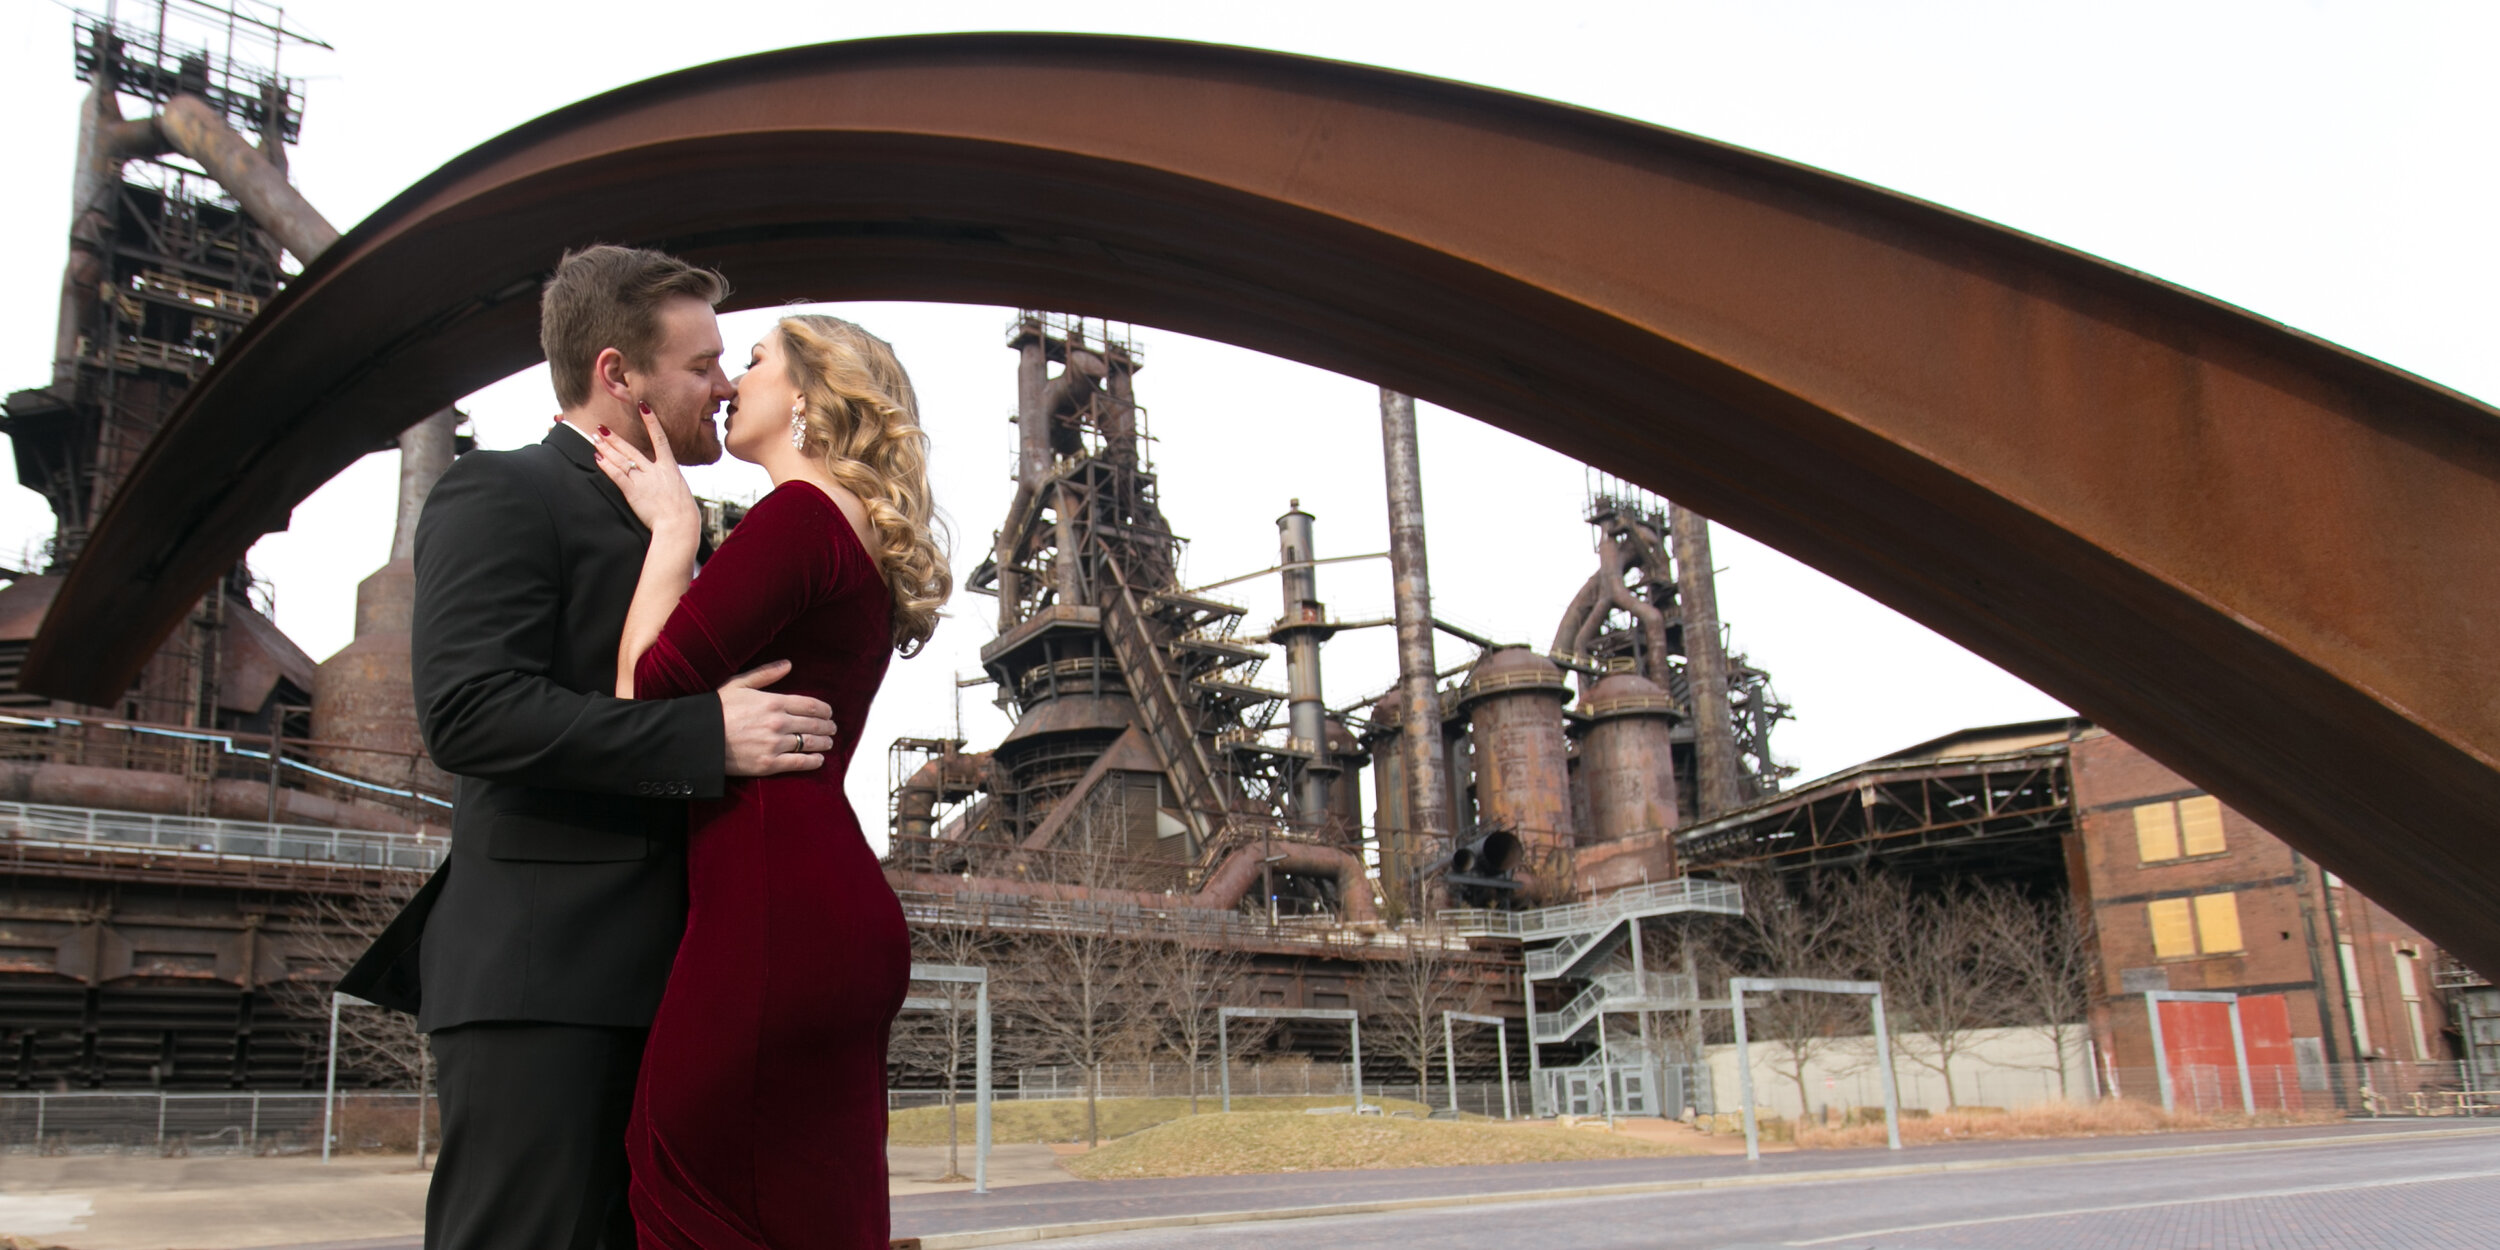 How To PrePare For Engagement Photos -